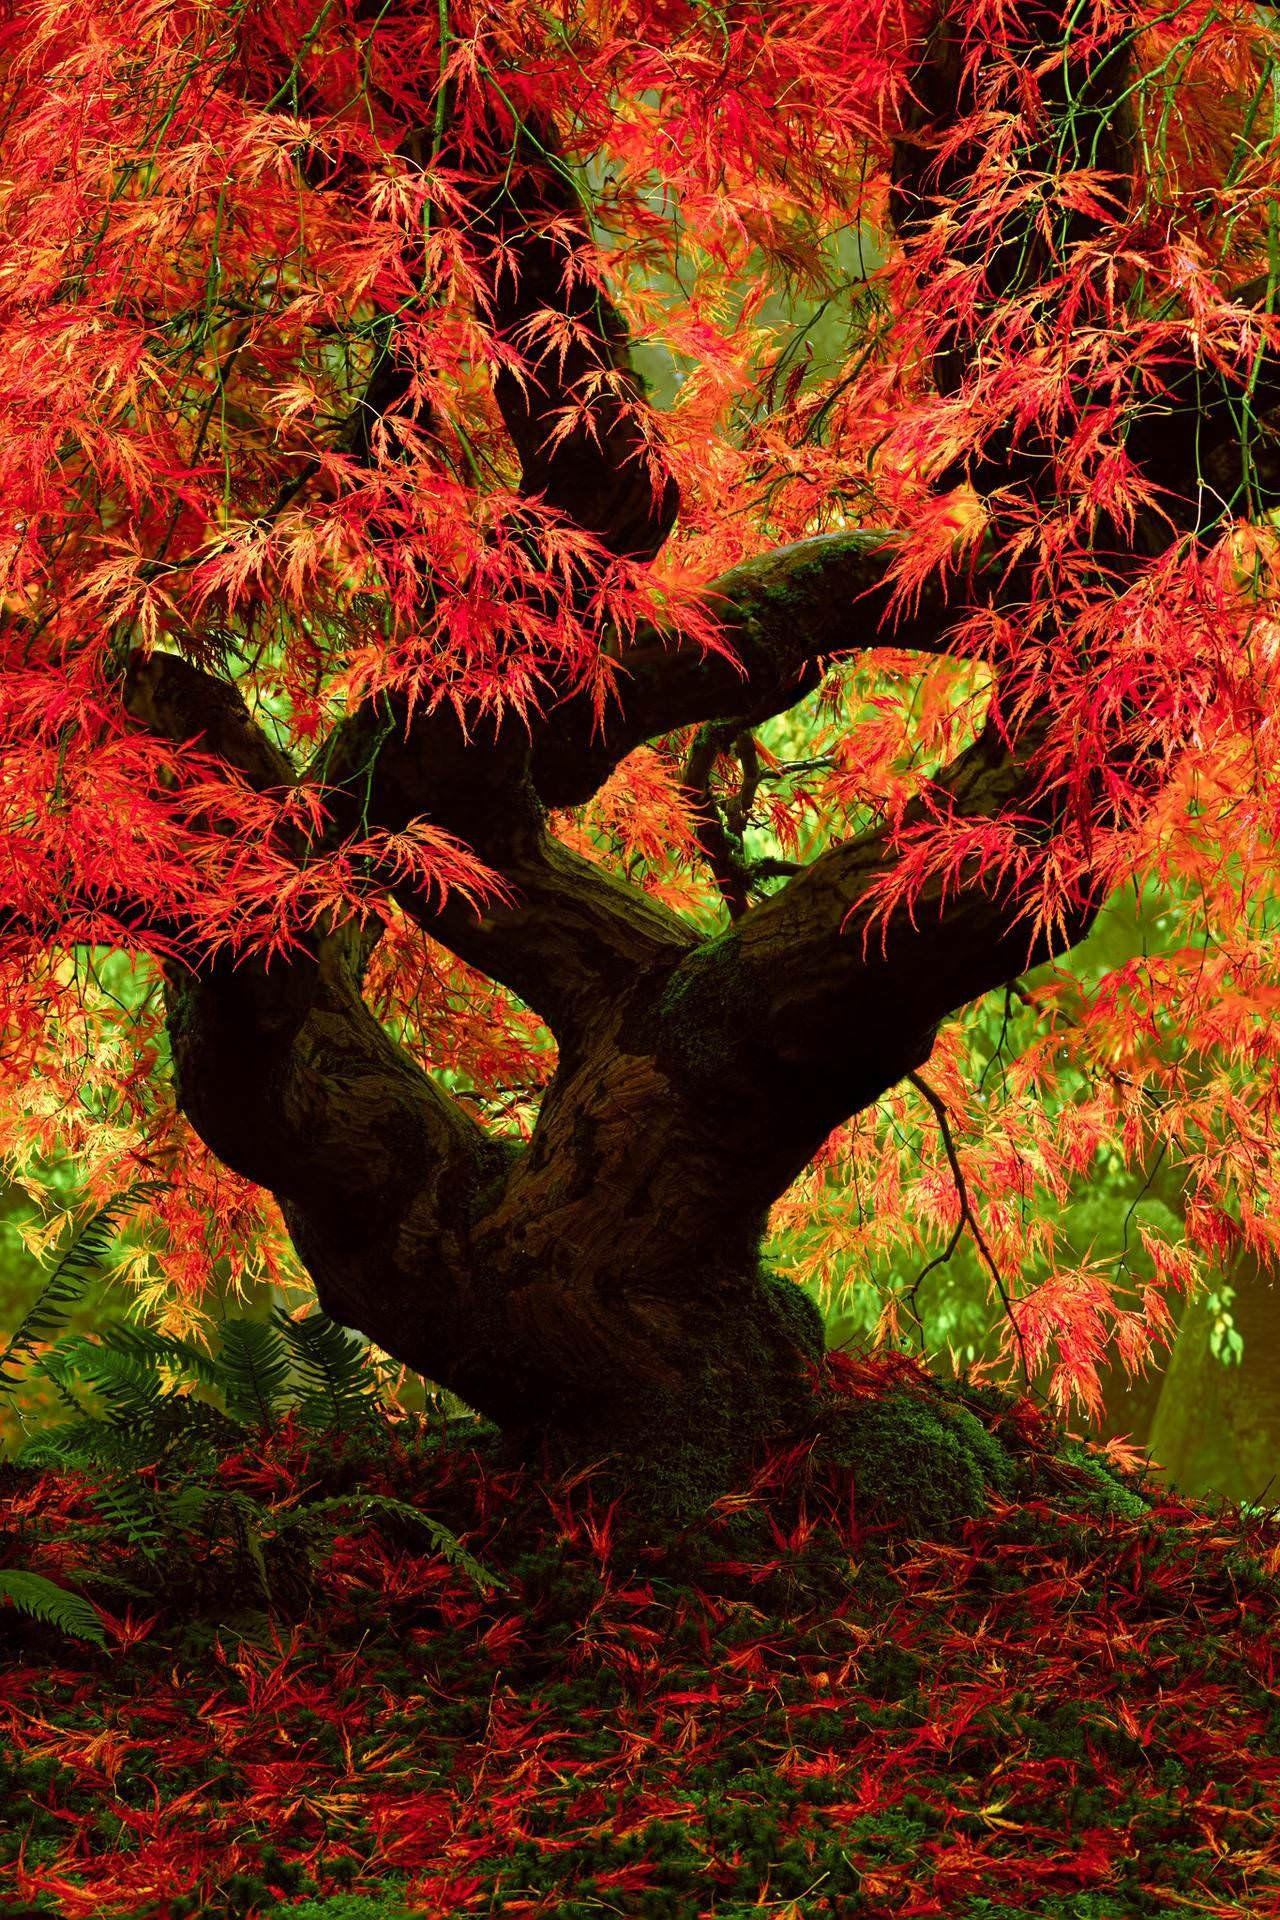 Japanese Maple at the Portland Japanese Garden is straight